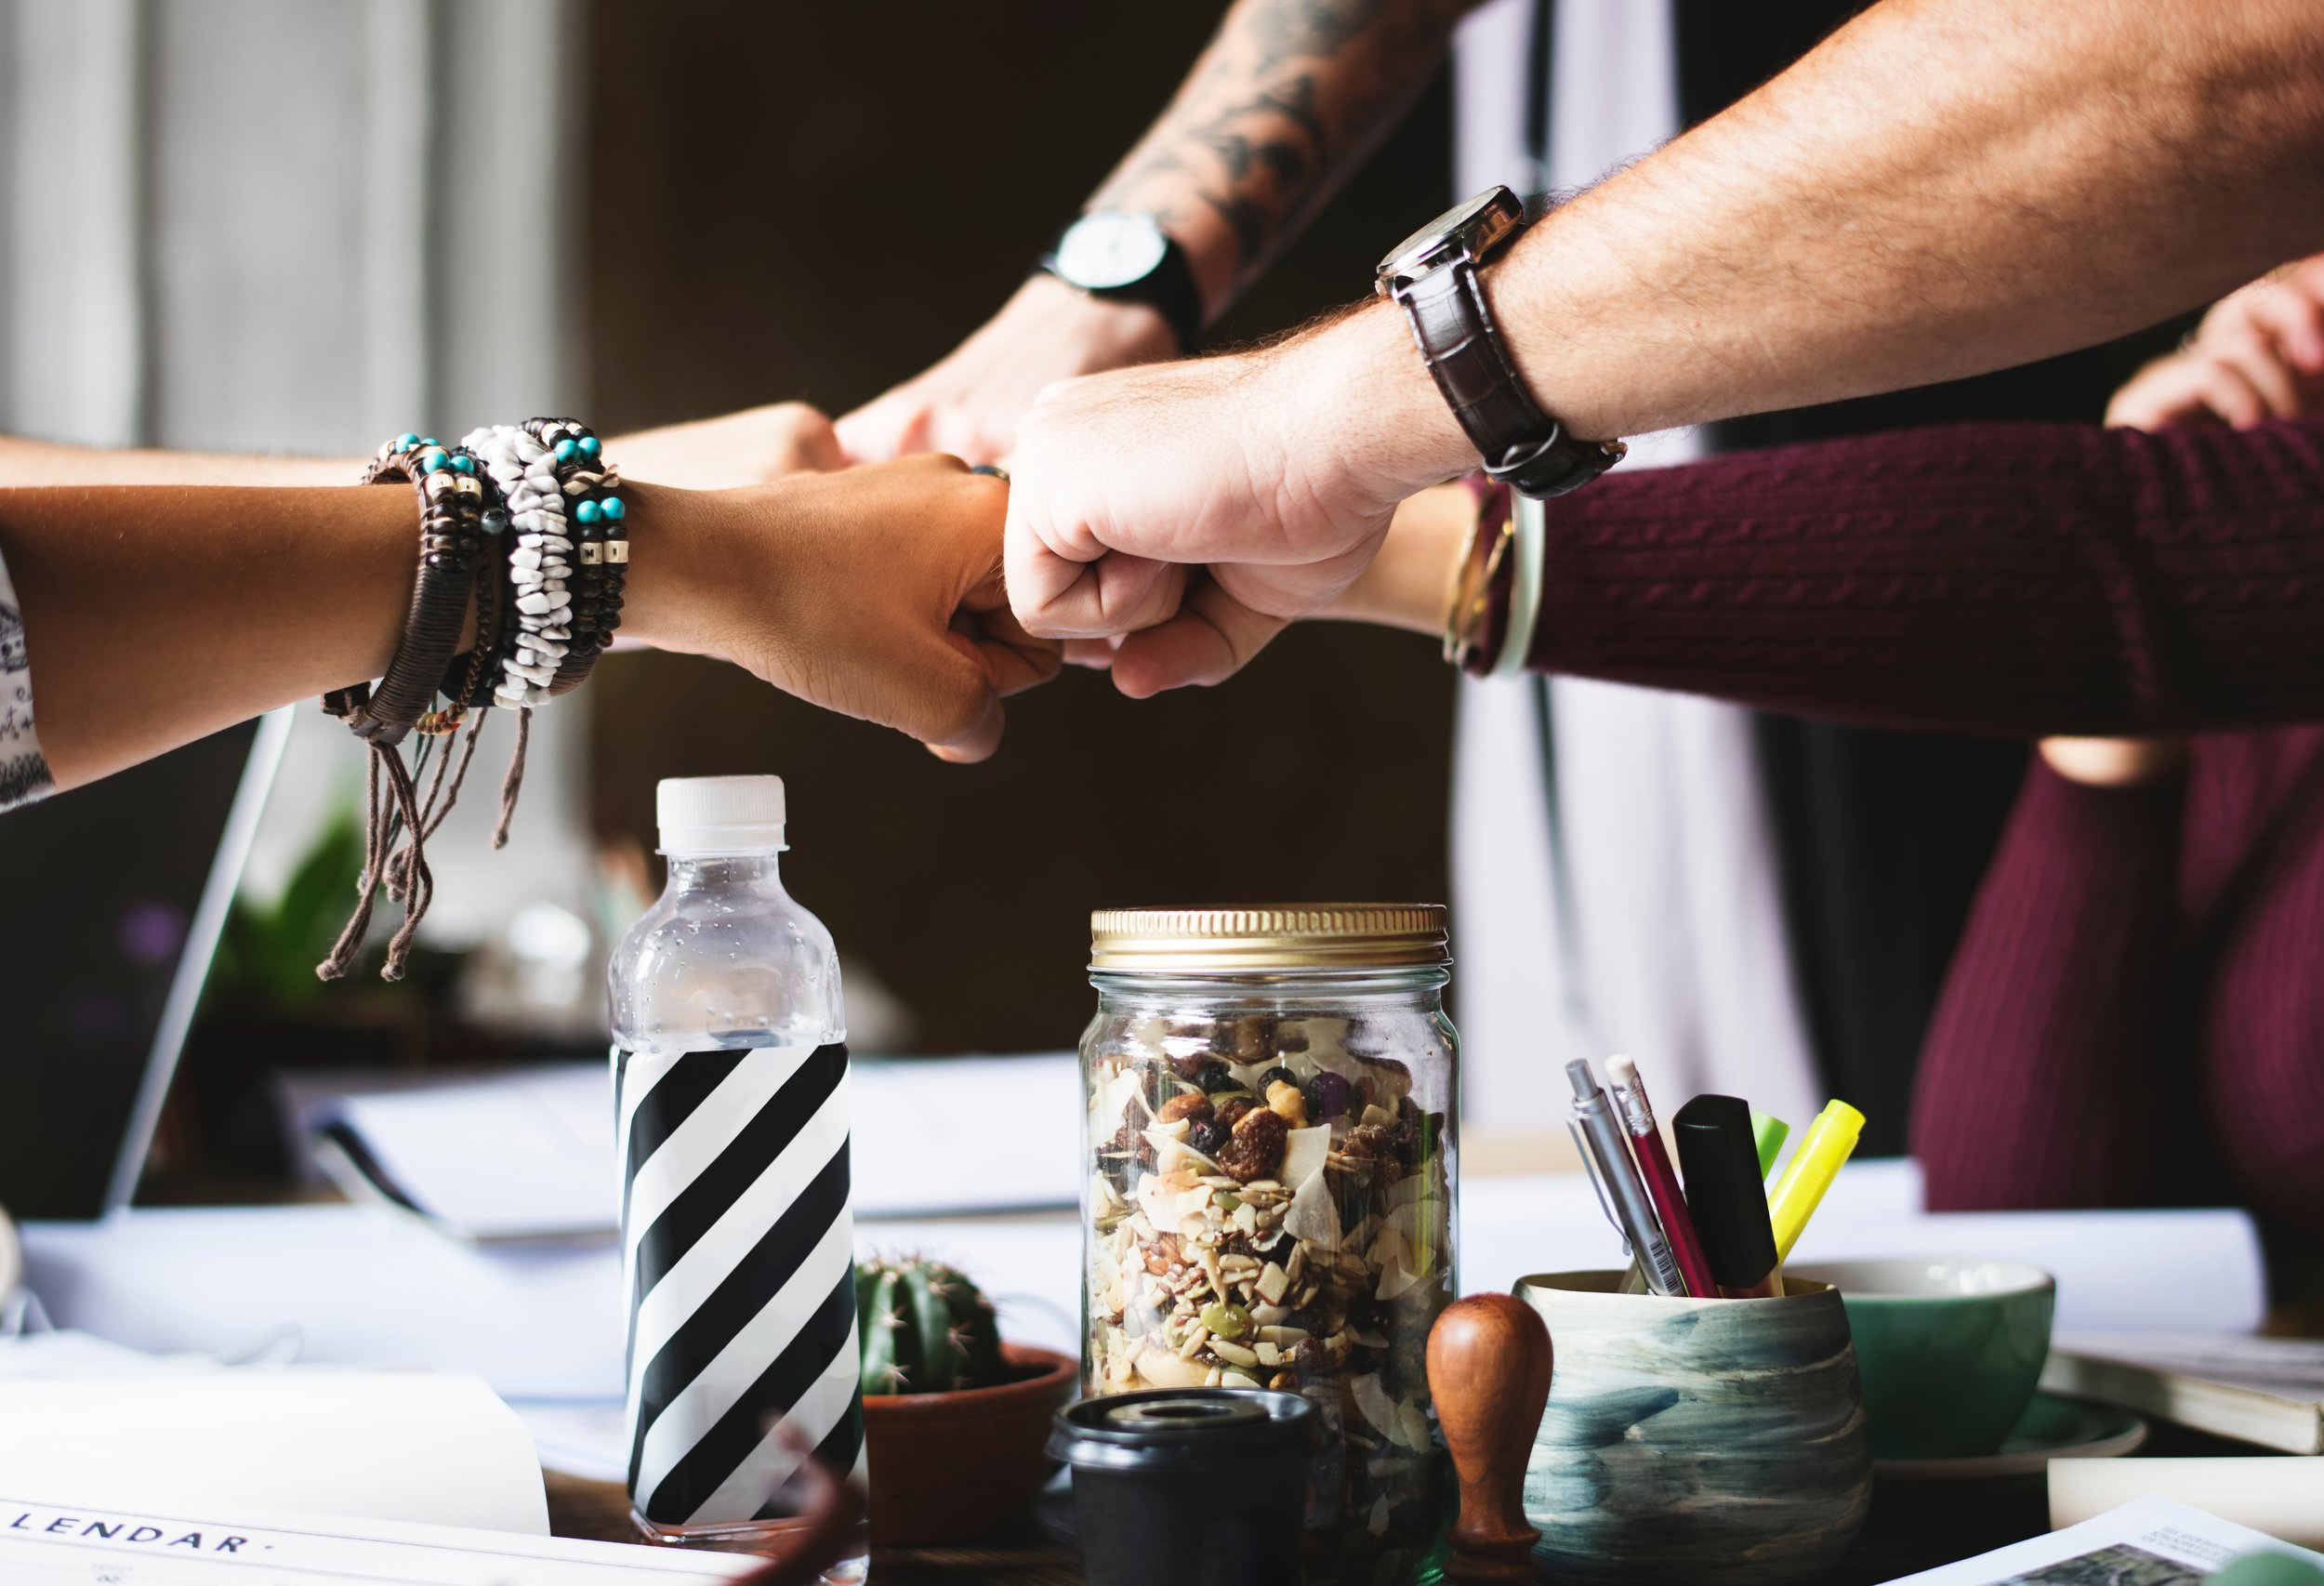 COMPANY CULTURE   When the mission and values of your organization are clearly communicated and trained on it creates a united front. Each team member can answer how they and the organization will be successful and enjoy the work environment, which is a plus for all!